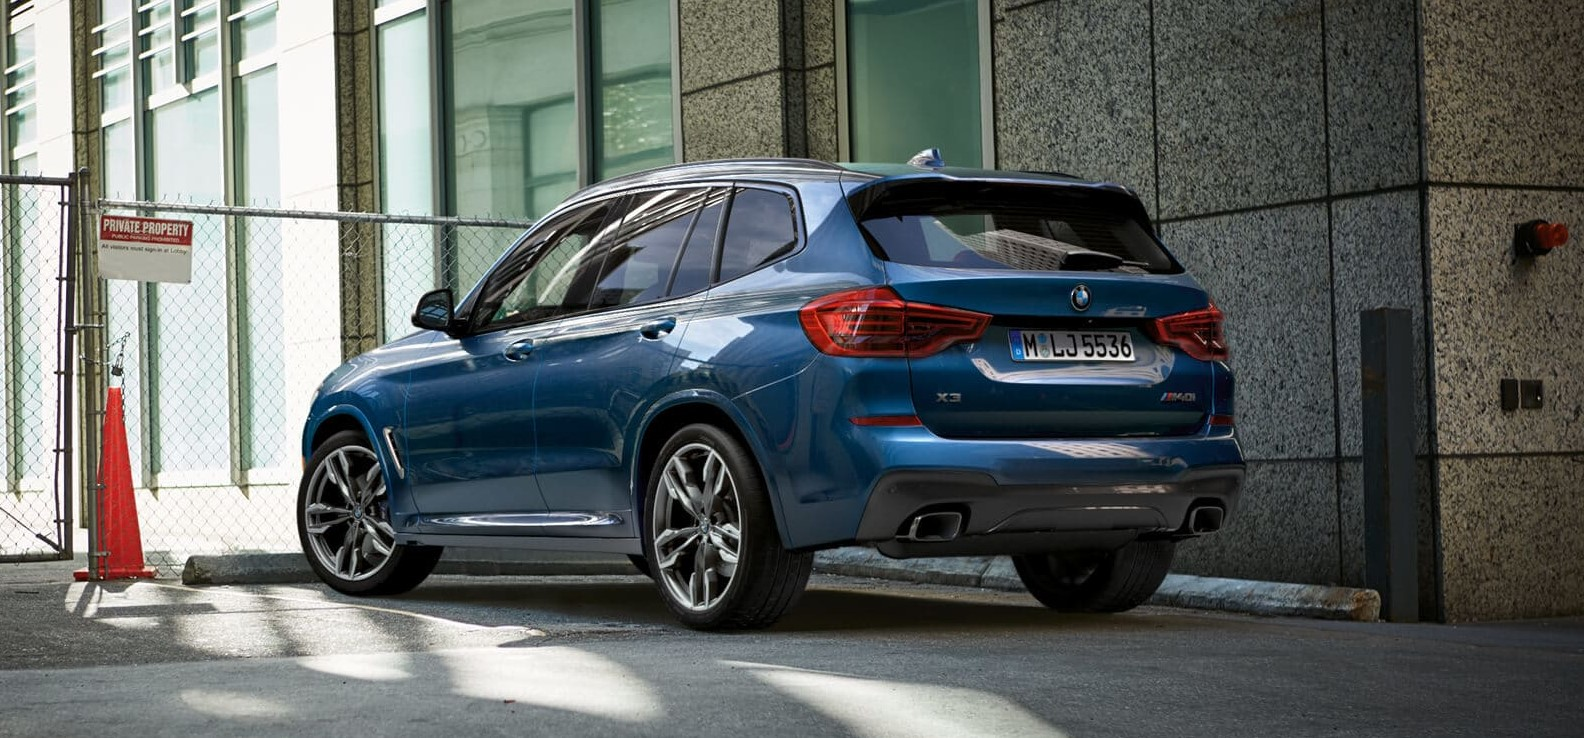 2019 BMW X3 Rear Blue Exterior